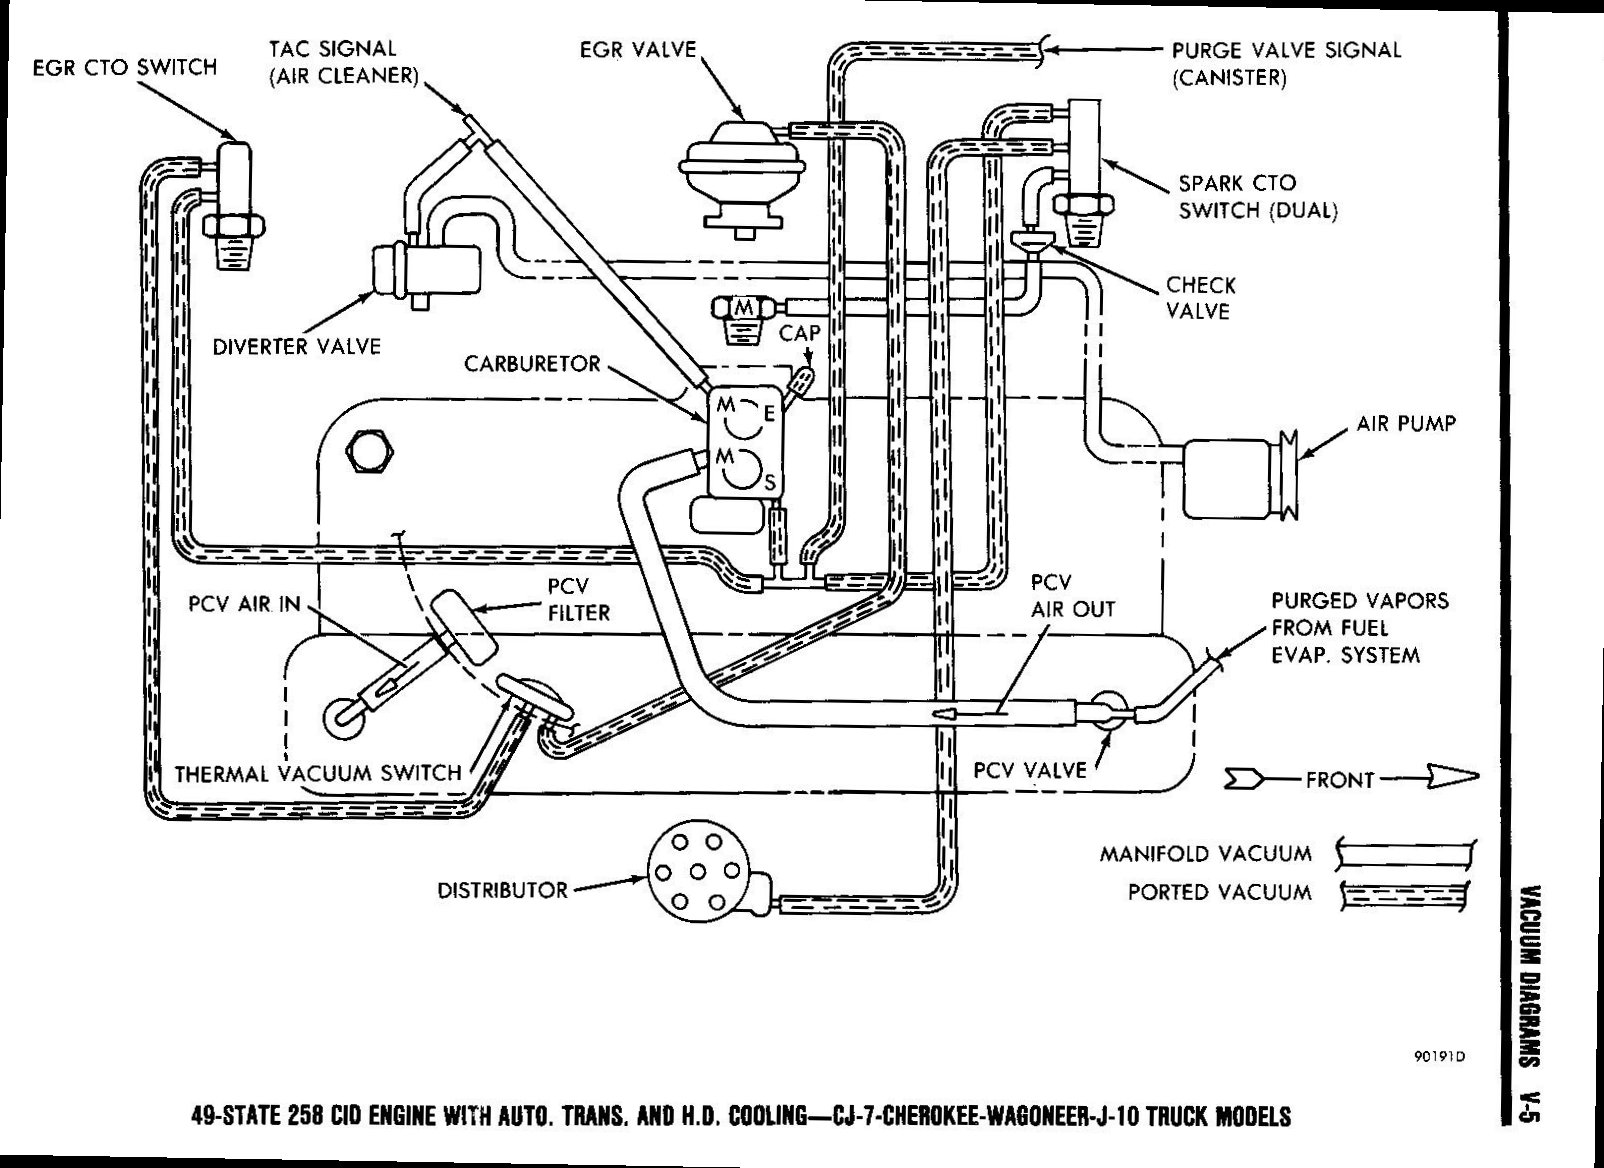 79 FSJ 6cyl_Vacuum 2 tom 'oljeep' collins fsj vacuum layout page 1978 Corvette Wiring Diagram at readyjetset.co